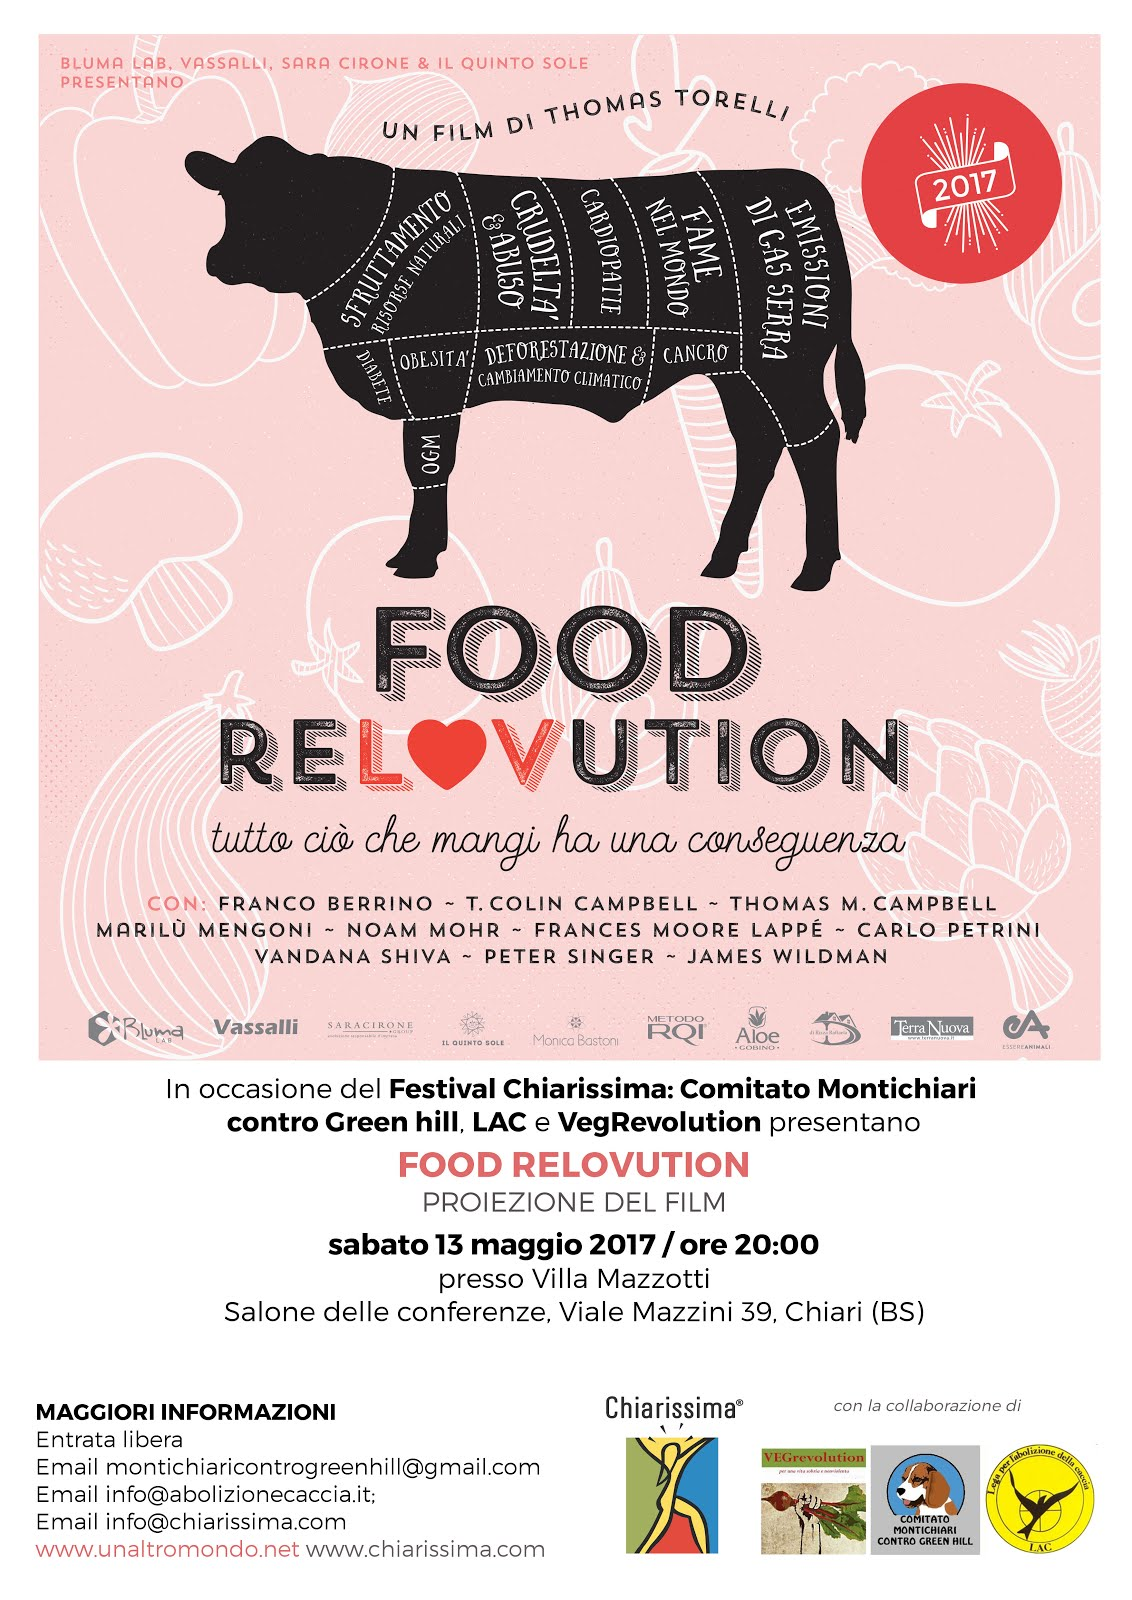 proiezione film FOOD RELOVUTION